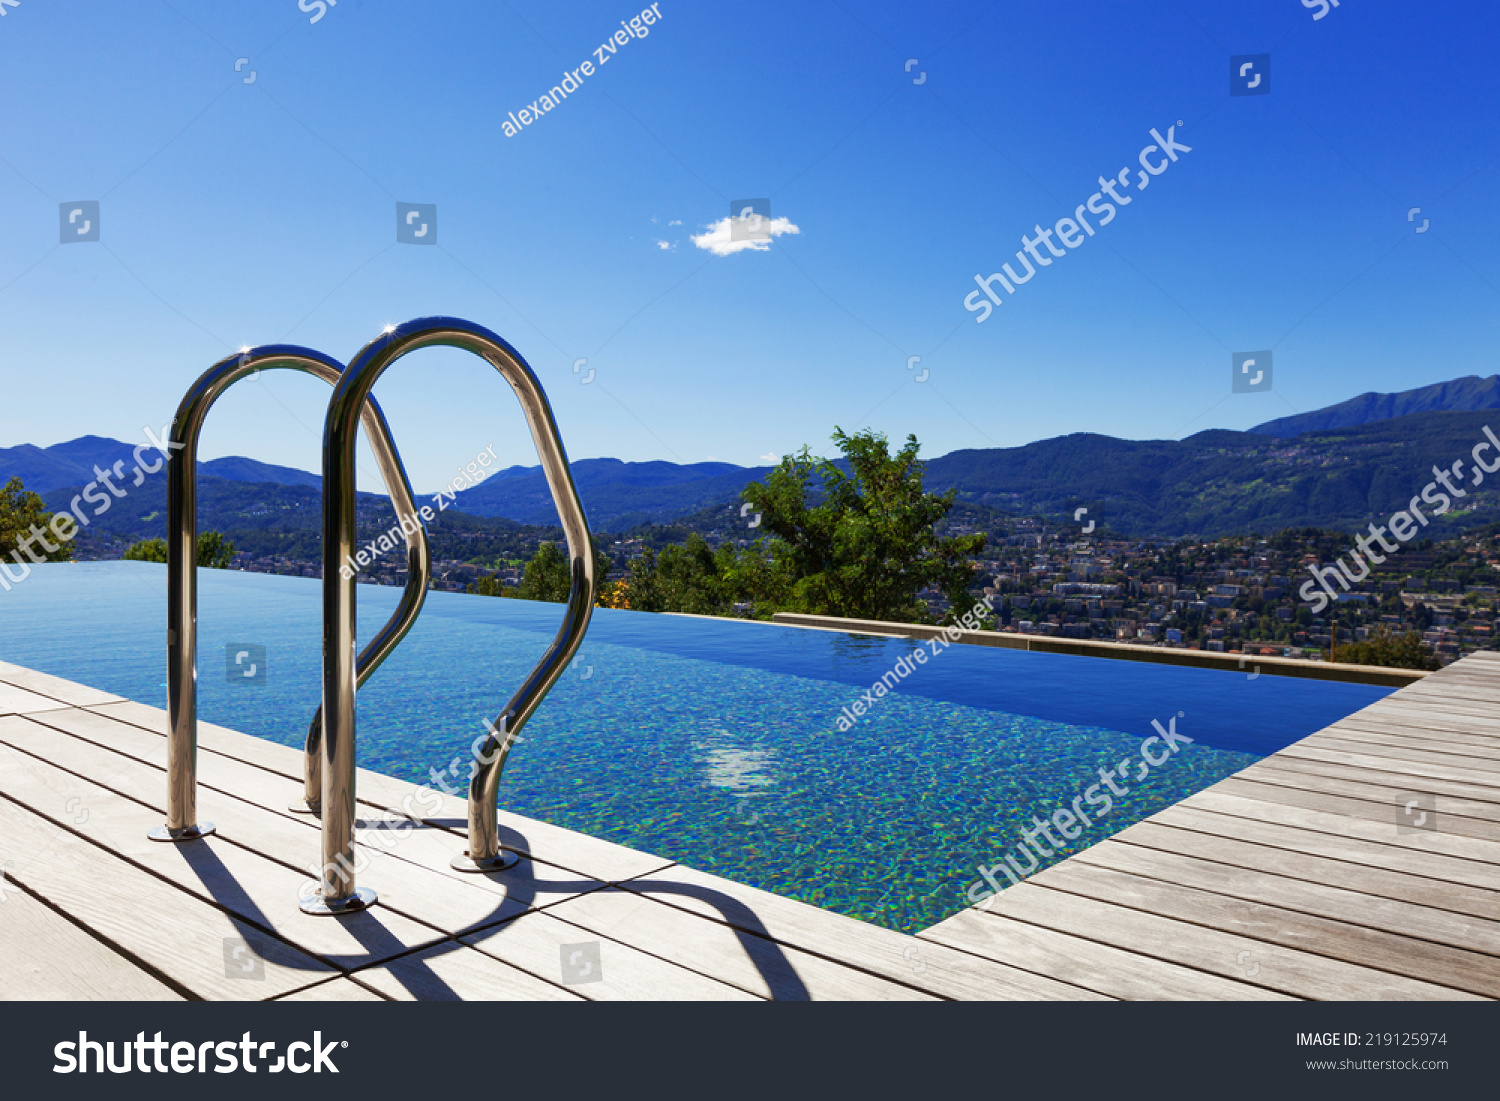 Grab Bars Ladder Swimming Pool Outdoor Stock Photo 219125974 ...